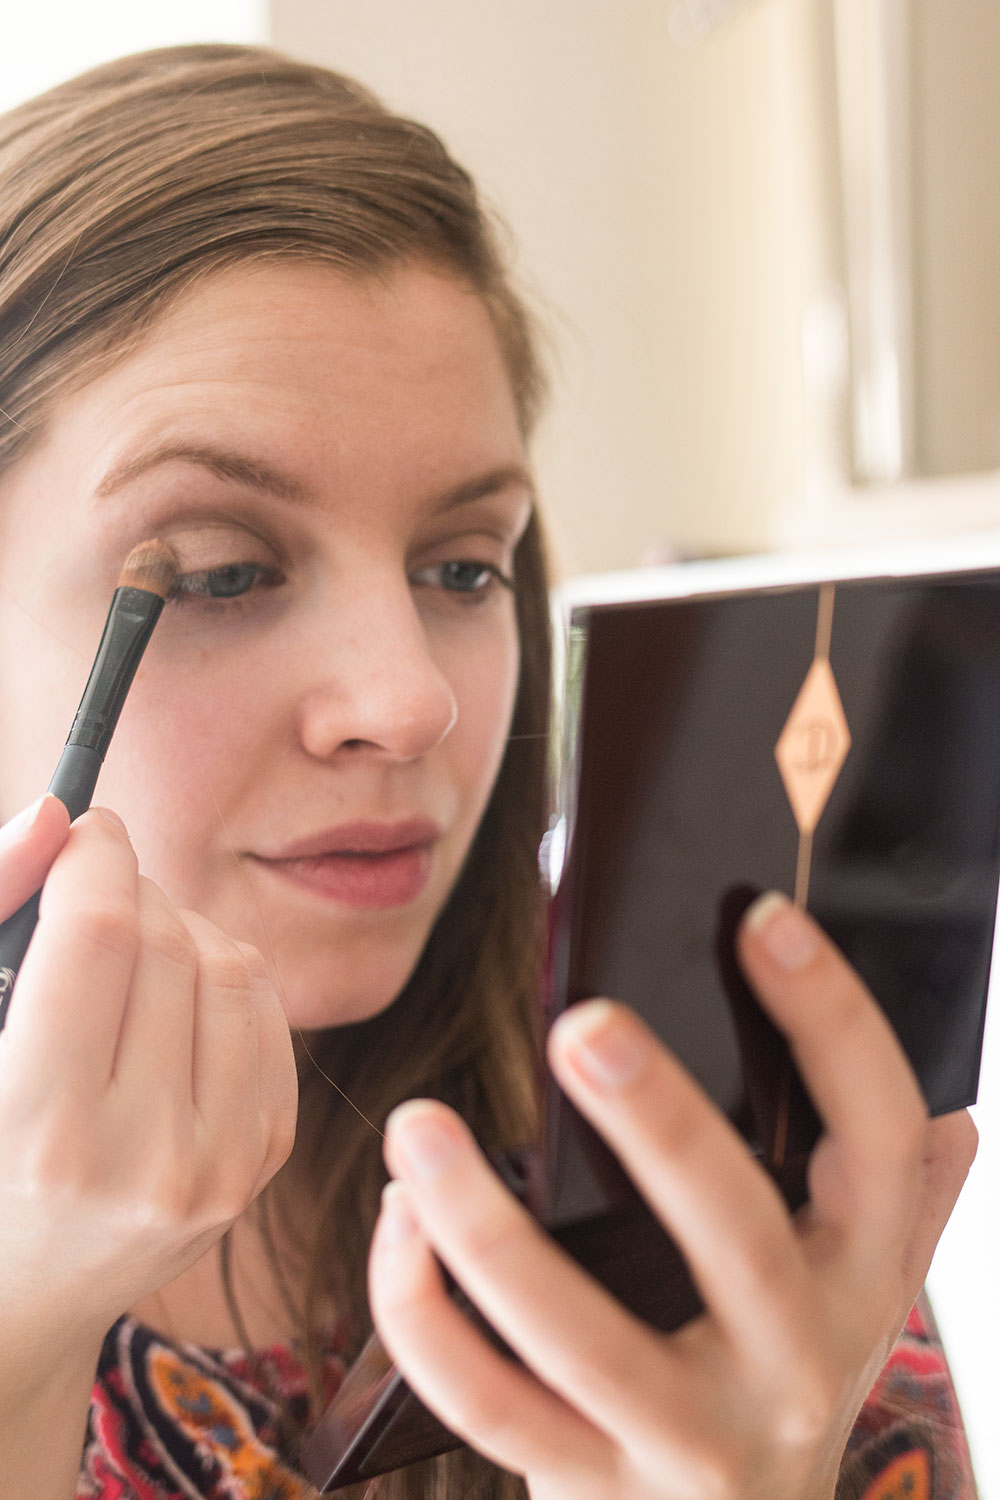 Charlotte Tilbury Eyeshadow Review & Tutorial // Hello Rigby Seattle Beauty Blog